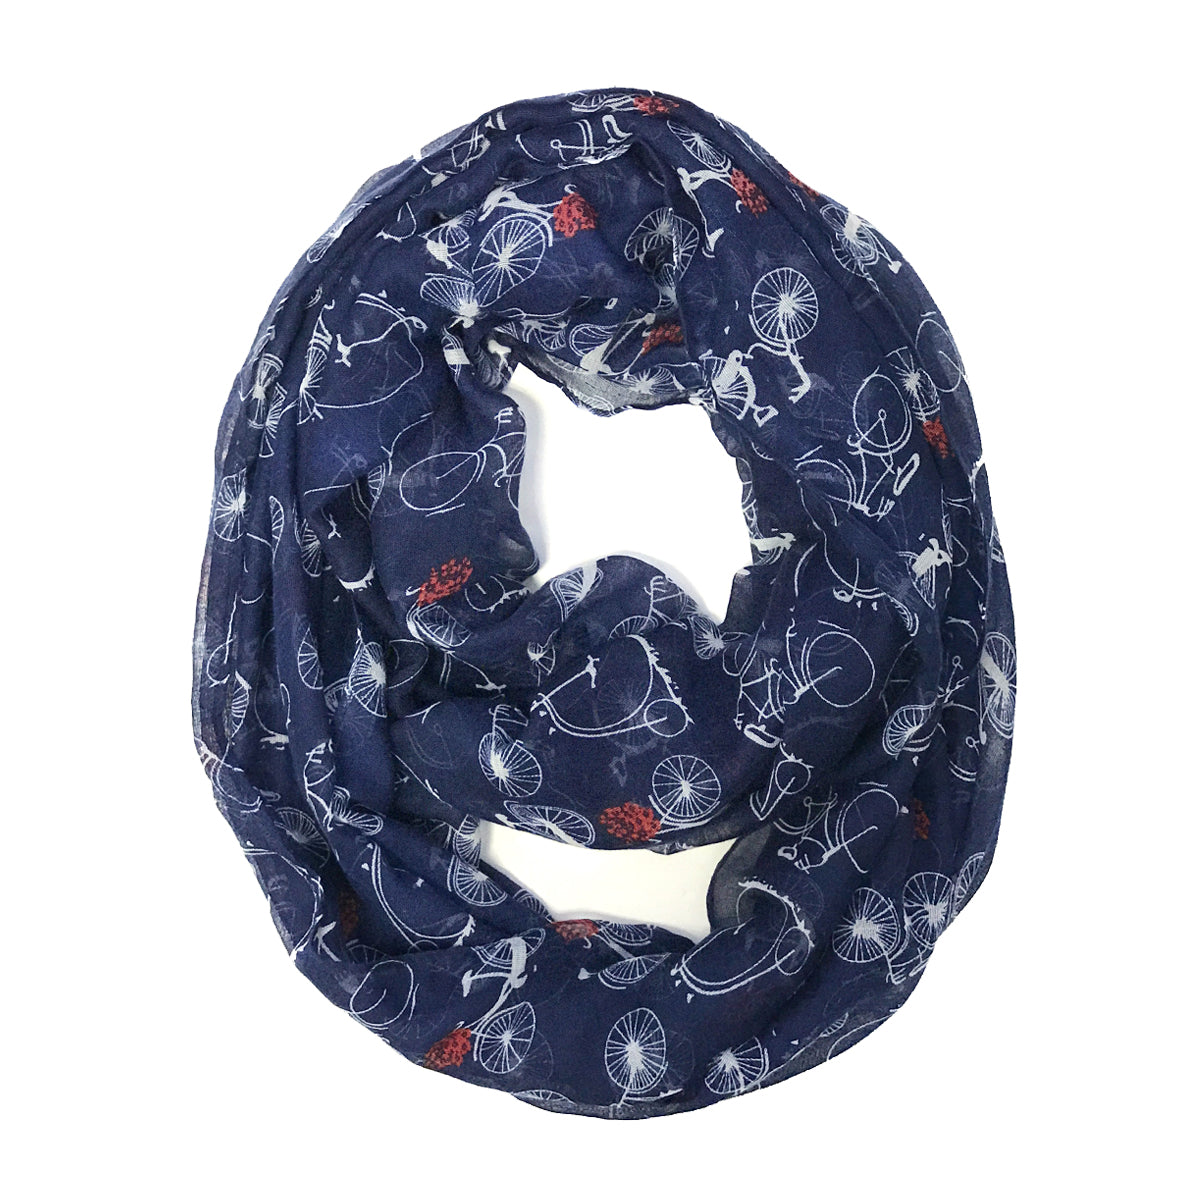 Wrapables Lightweight Vintage Bicycle Infinity Scarf